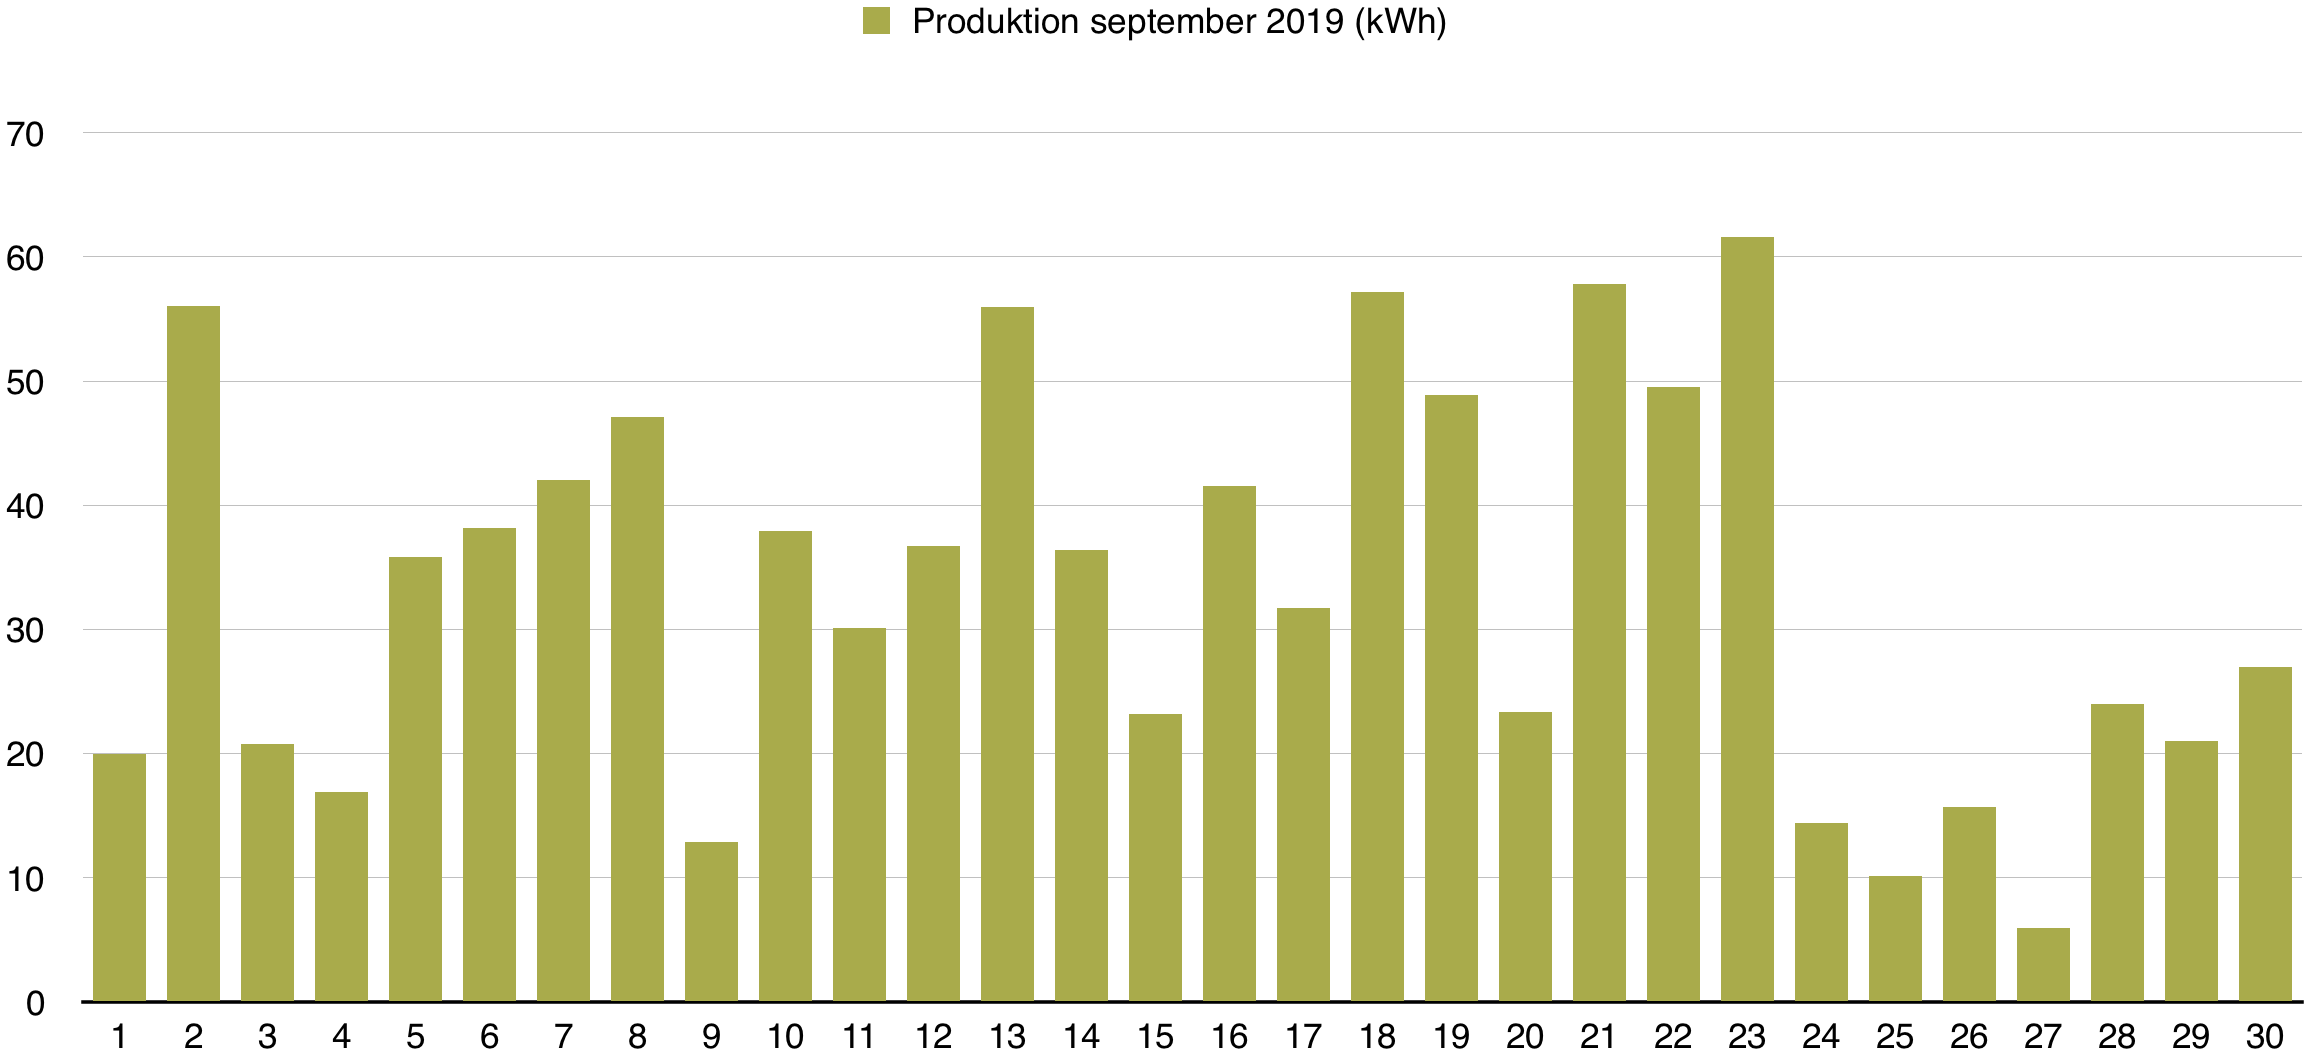 Solceller - Produktion september 2019